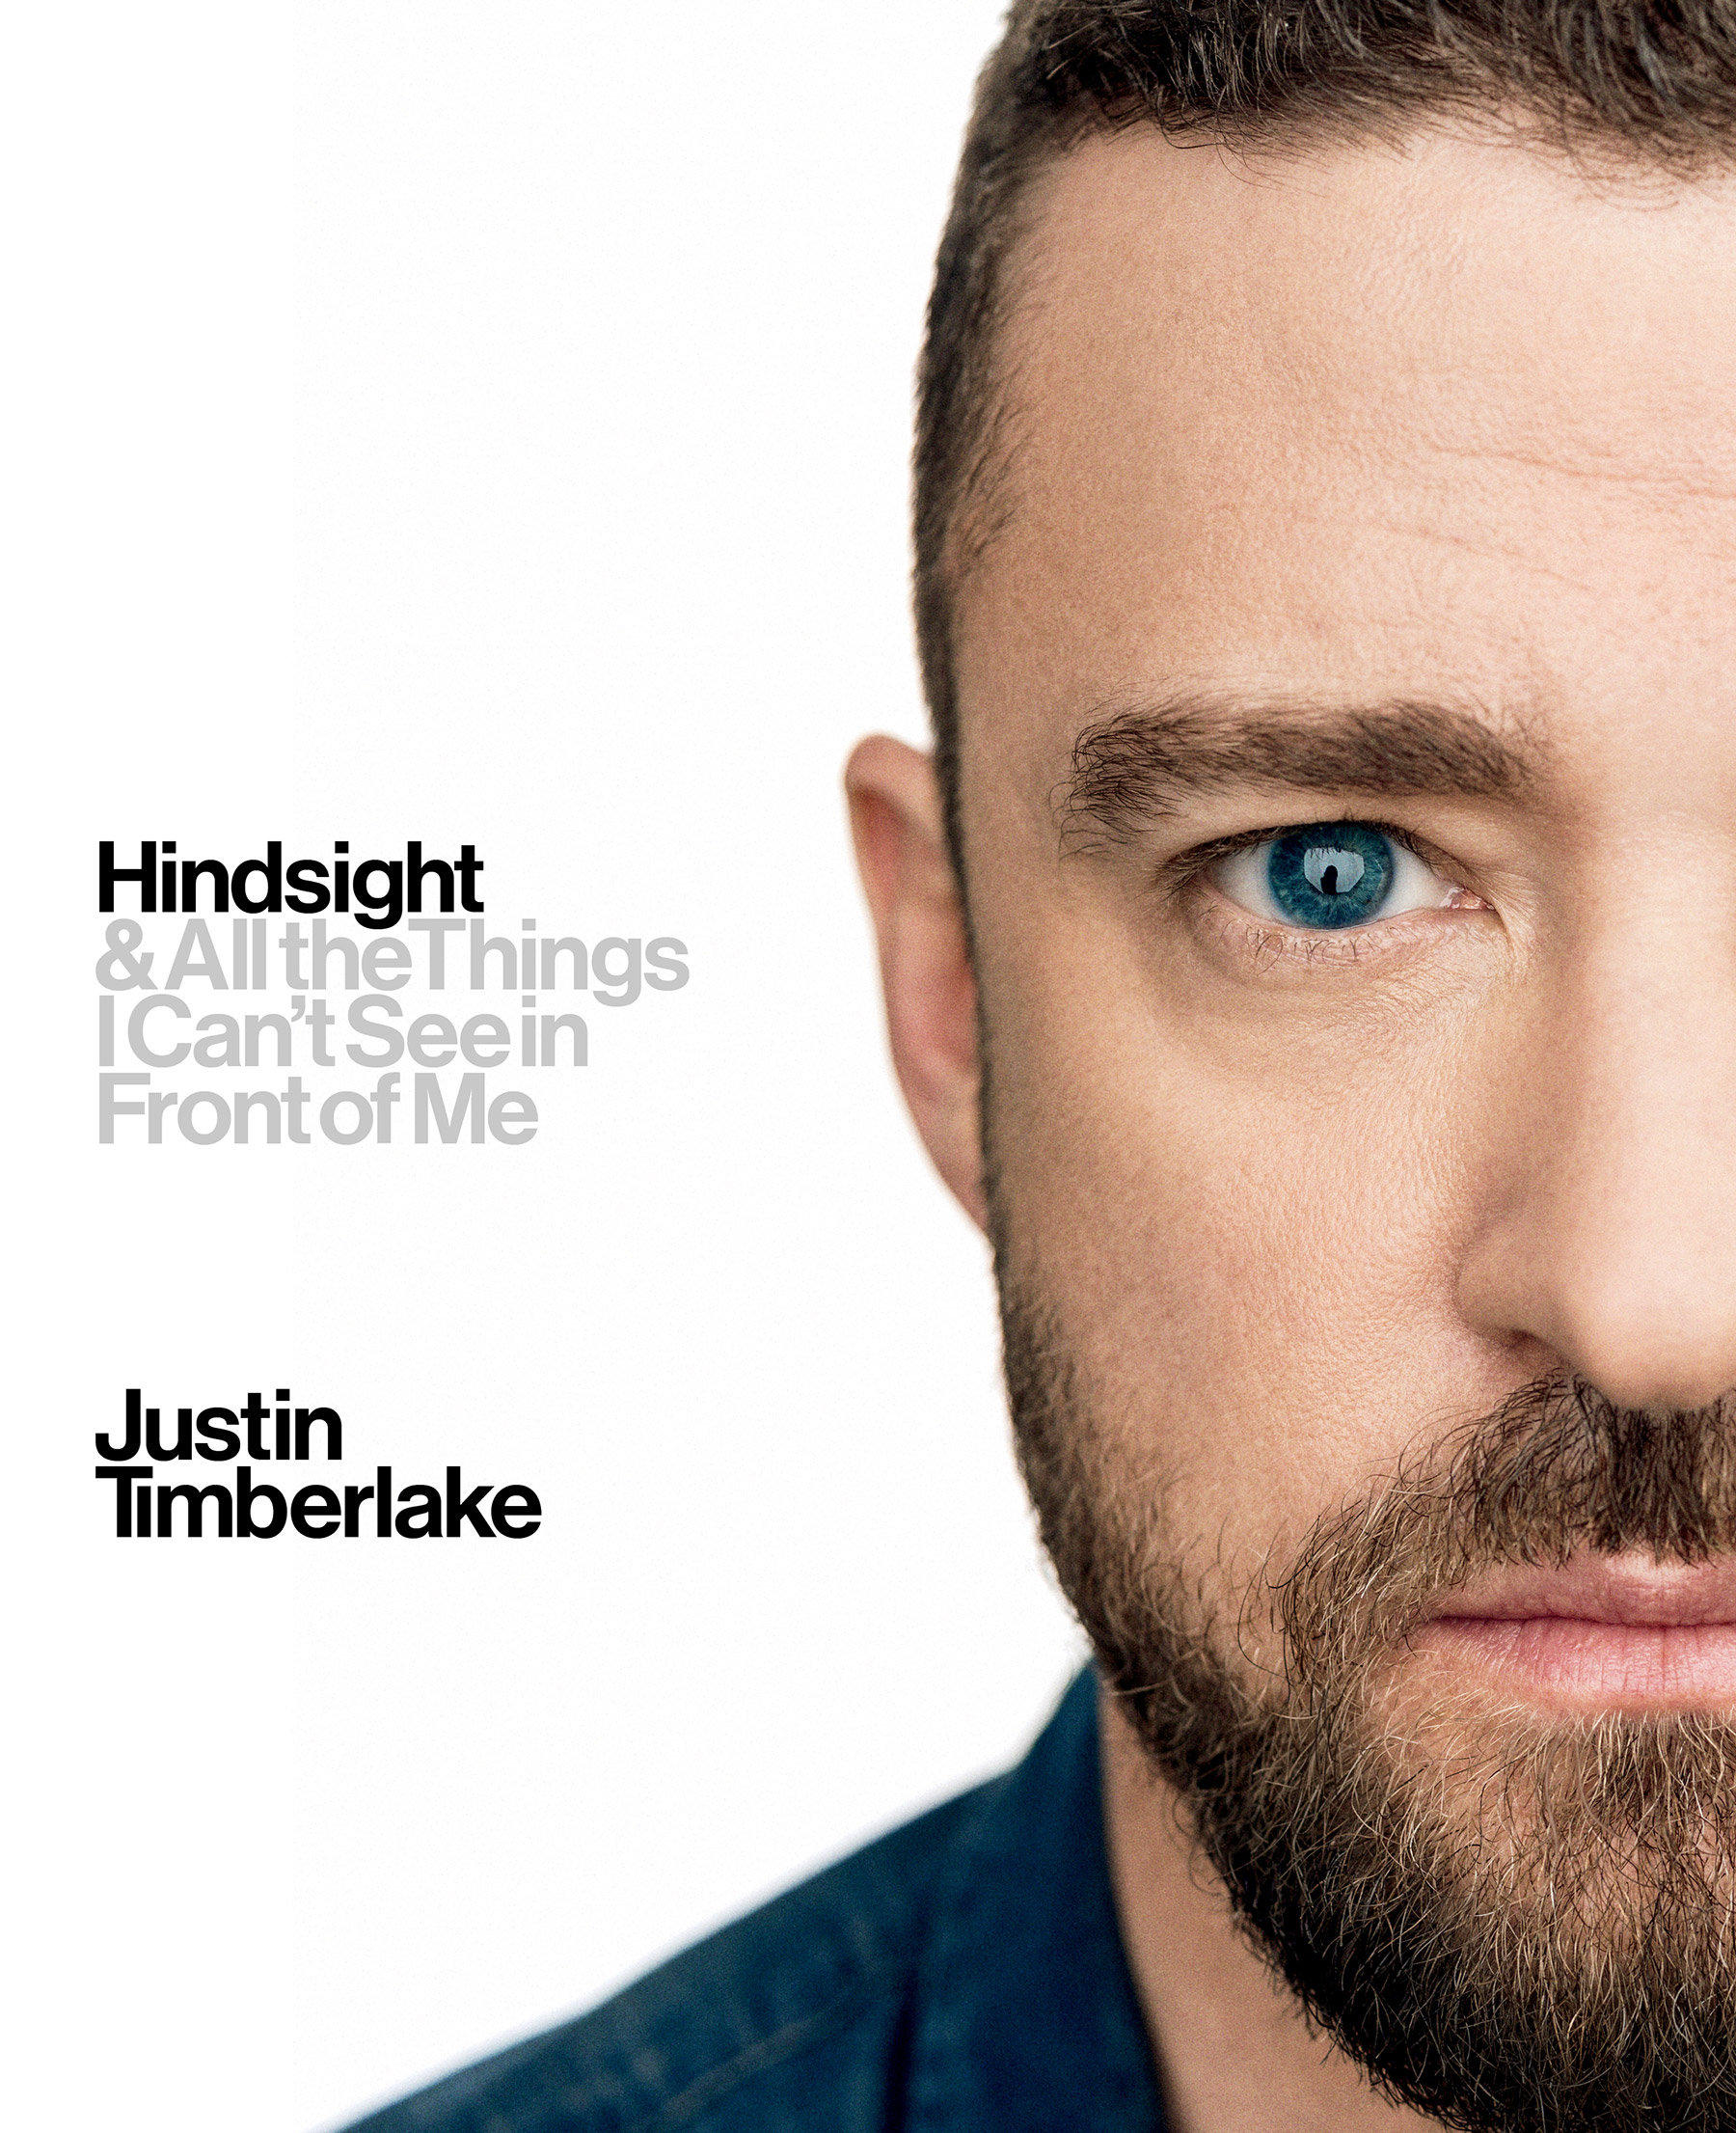 What-Justin-Timberlake-Book-Hindsight-About